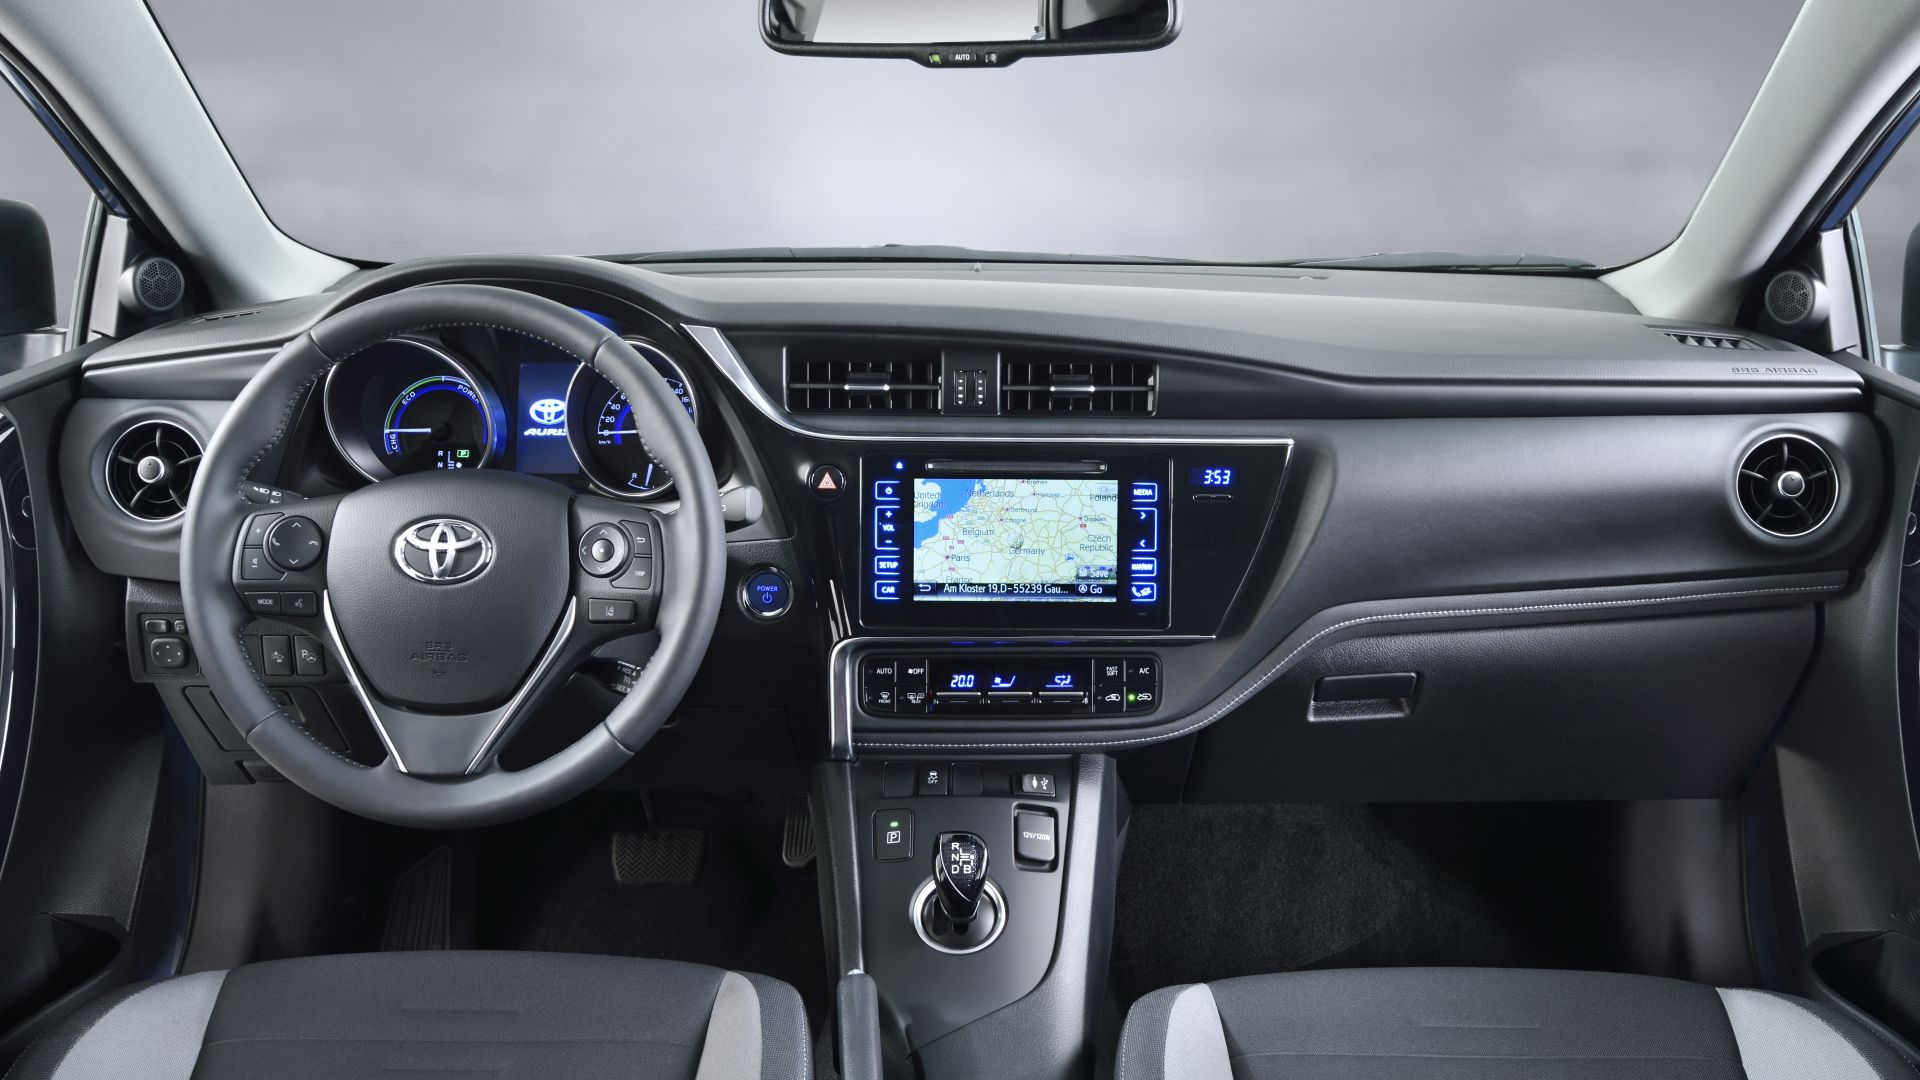 Toyota auris, hatchback, hybrid, blue, interior. (horizontal)